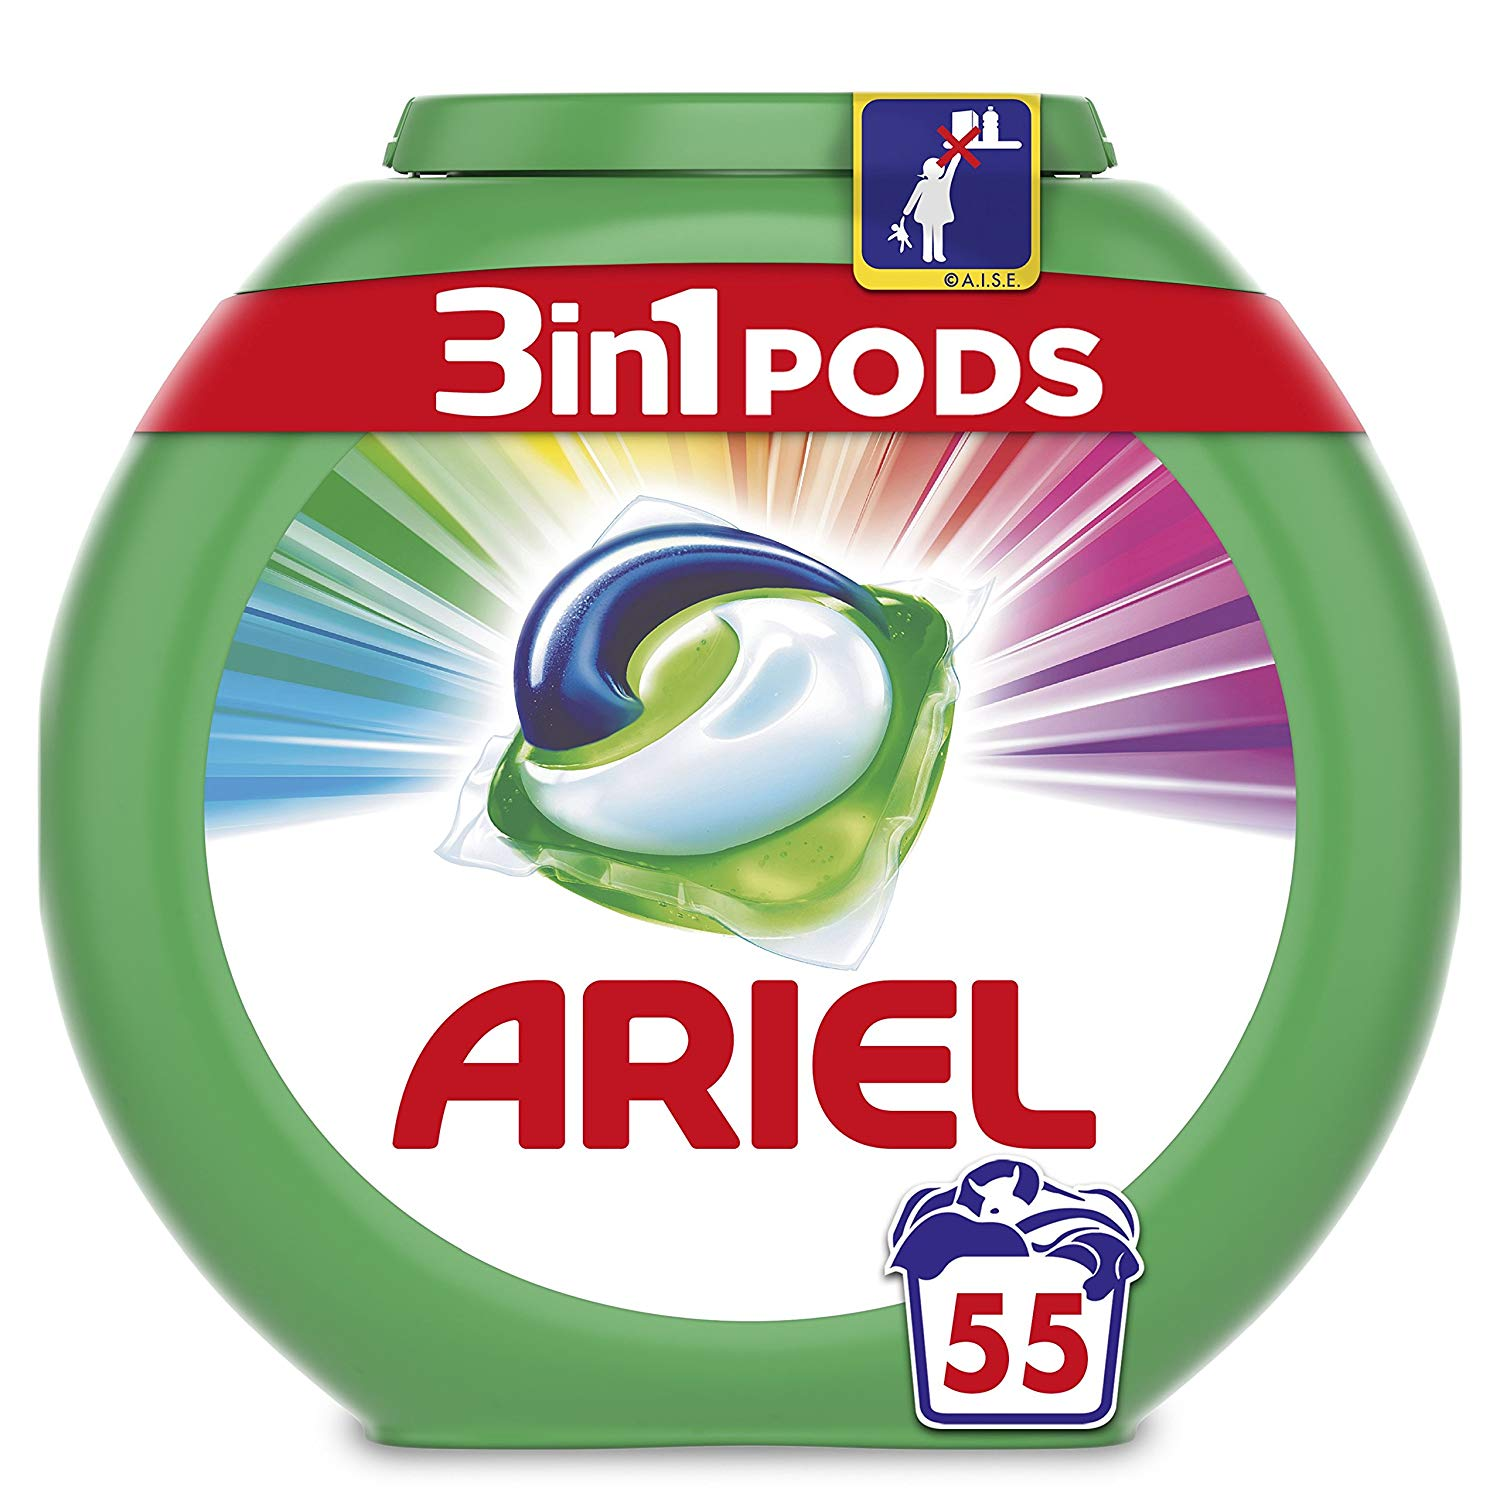 Amazon Pantry Ariel 3-in-1 Pods Colour and Style Washing Capsules, 55 Washes